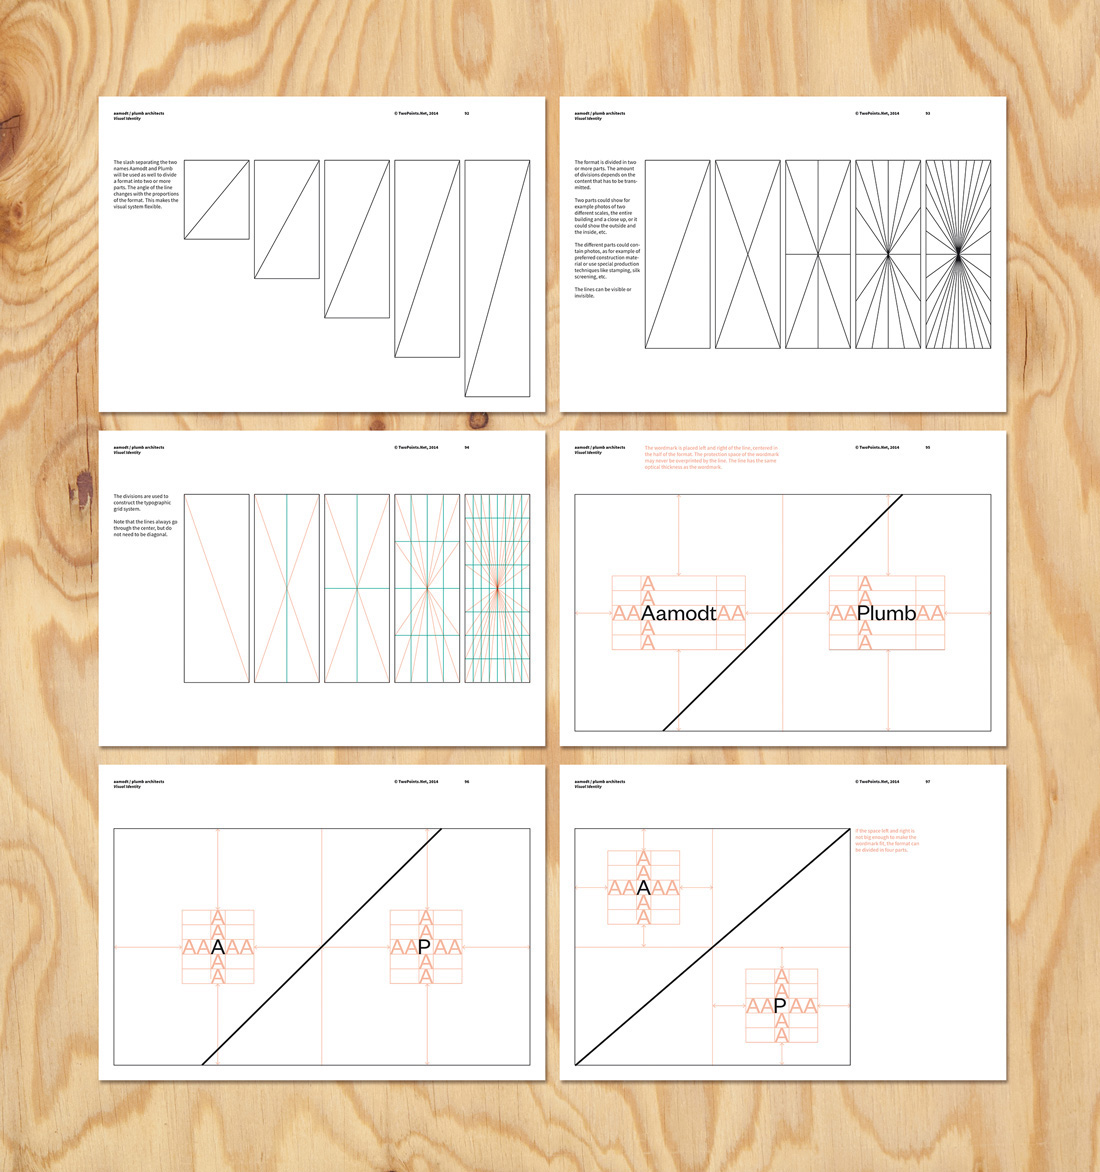 Aamodt/Plumb / Twopoints (8)